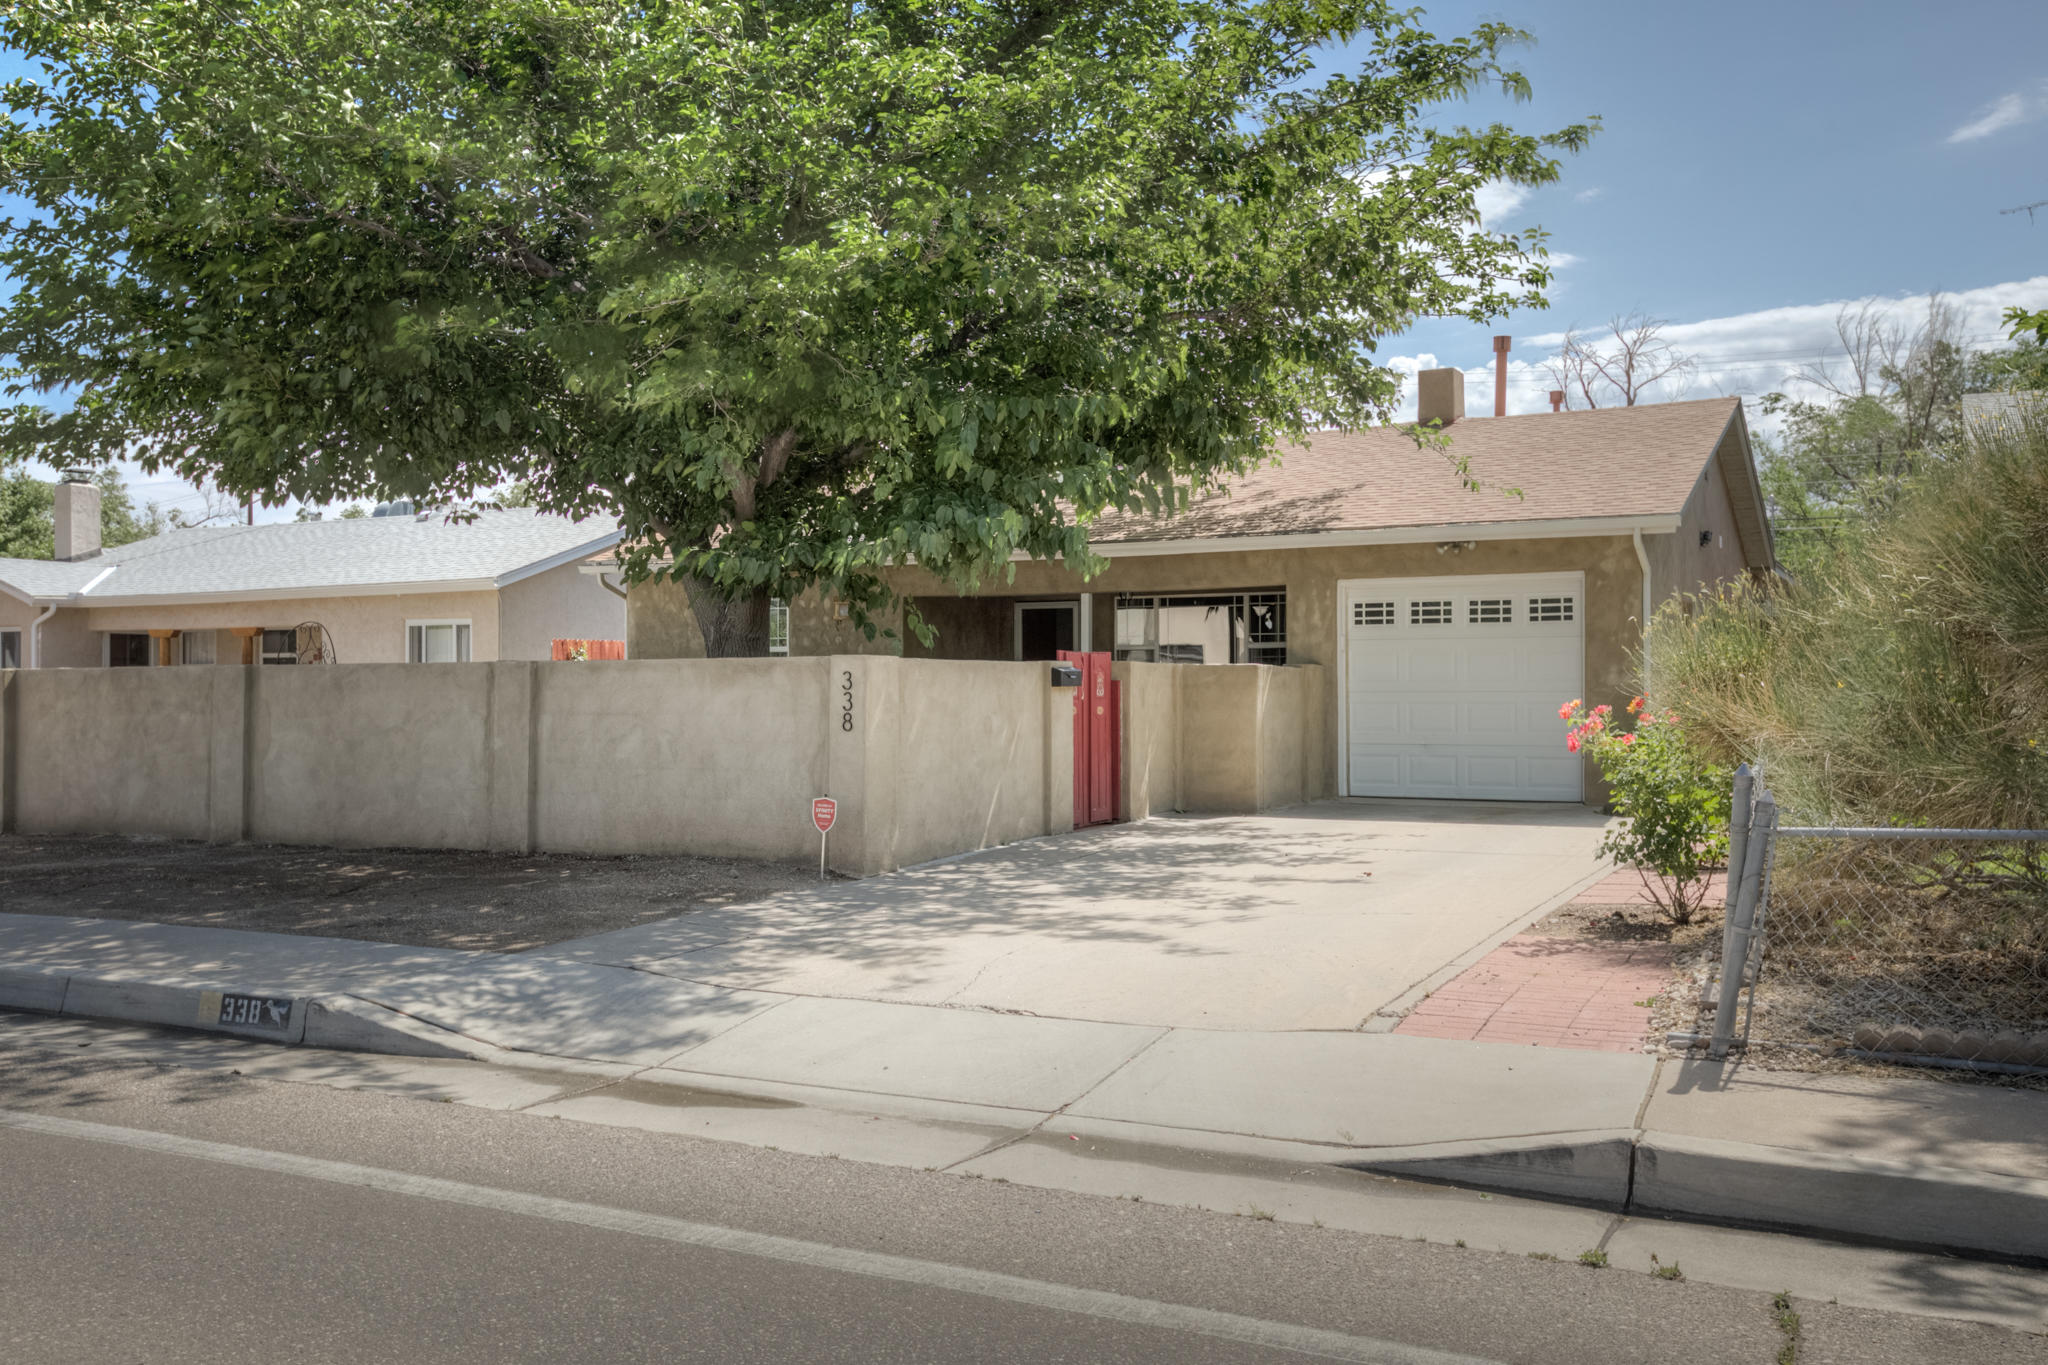 Beautiful, well maintained (new roof!) 4 bedroom home with tasteful updates and endless character just minutes from both Nob Hill and I40. Enjoy the gorgeous new kitchen complete with new stainless appliances and gas burner stove, or the charming wood beam ceilings and stylishly updated bathrooms. A great front courtyard and large backyard (with alley access!) provide private outdoor settings sure to please anyone. See it today!